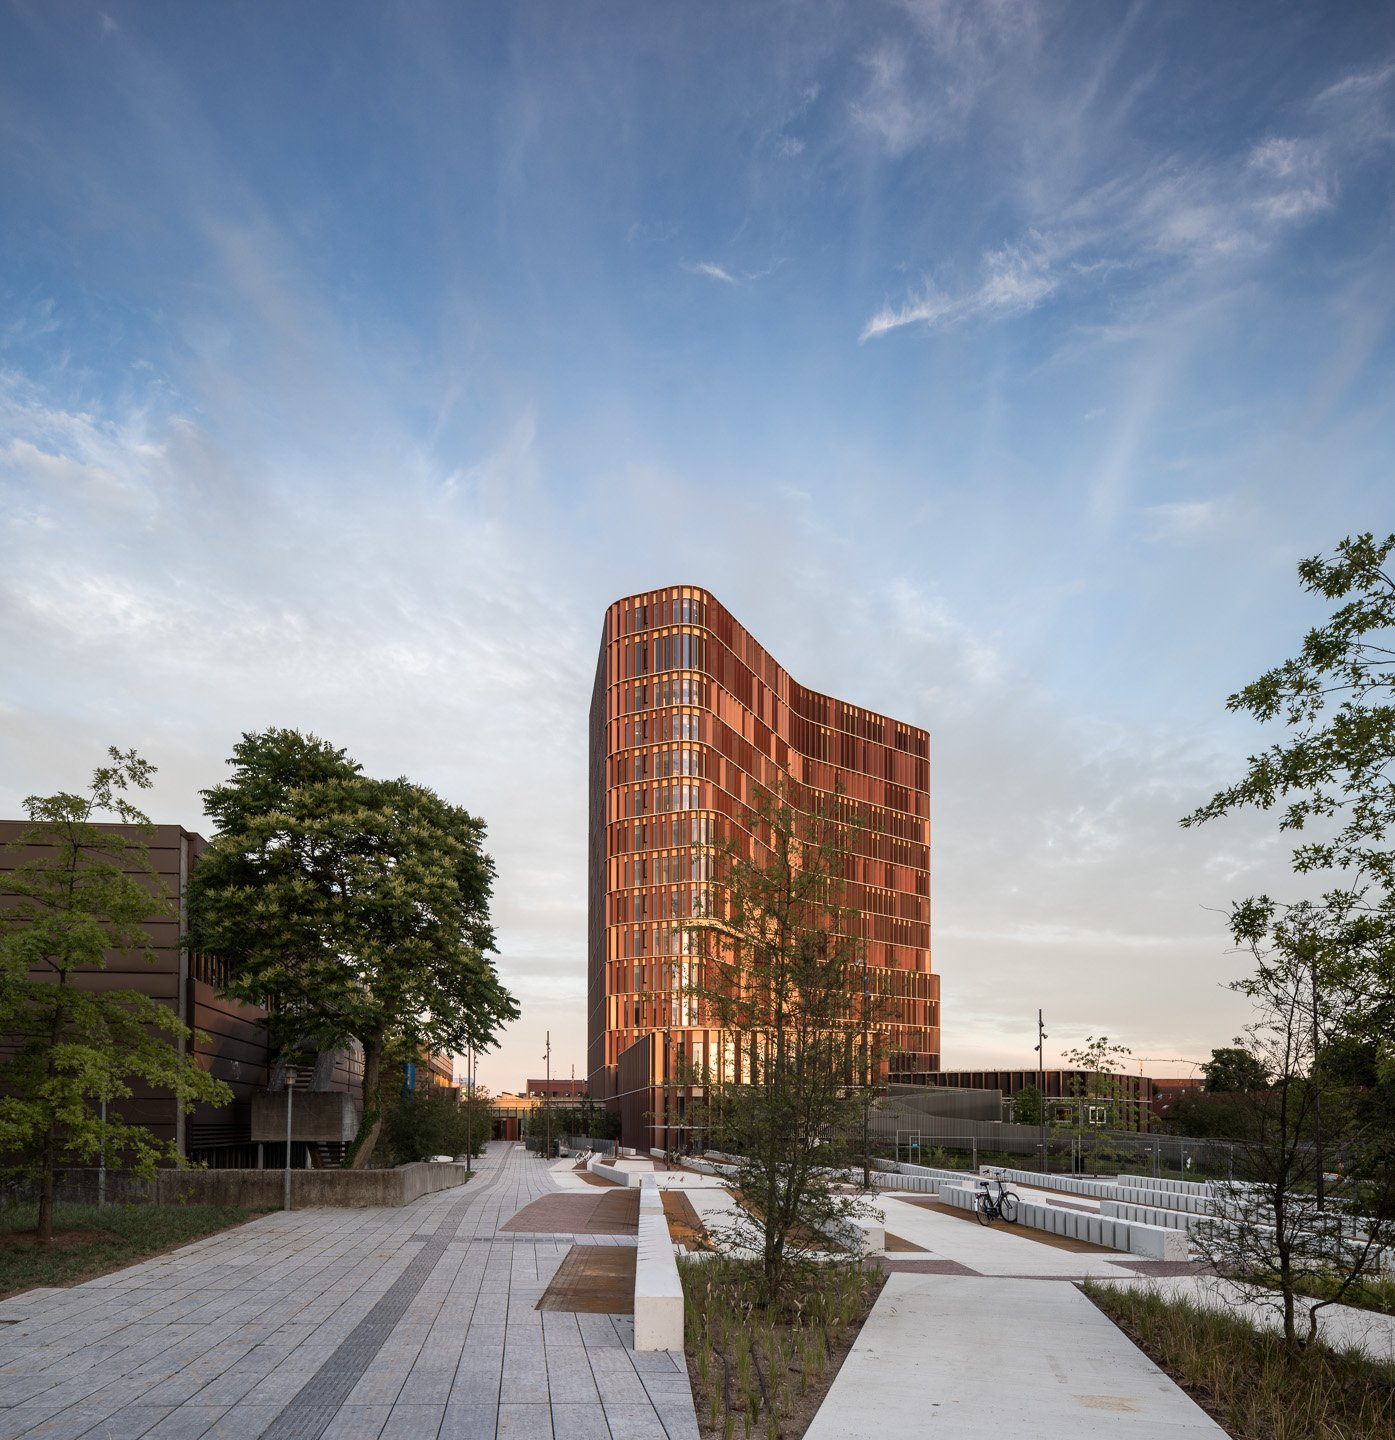 With its easily readable and dynamically curved shape, the 15 storey research tower stands as a sculptural and identity-creating linchpin for the University's Faculty of Health Sciences. Adam Mørk